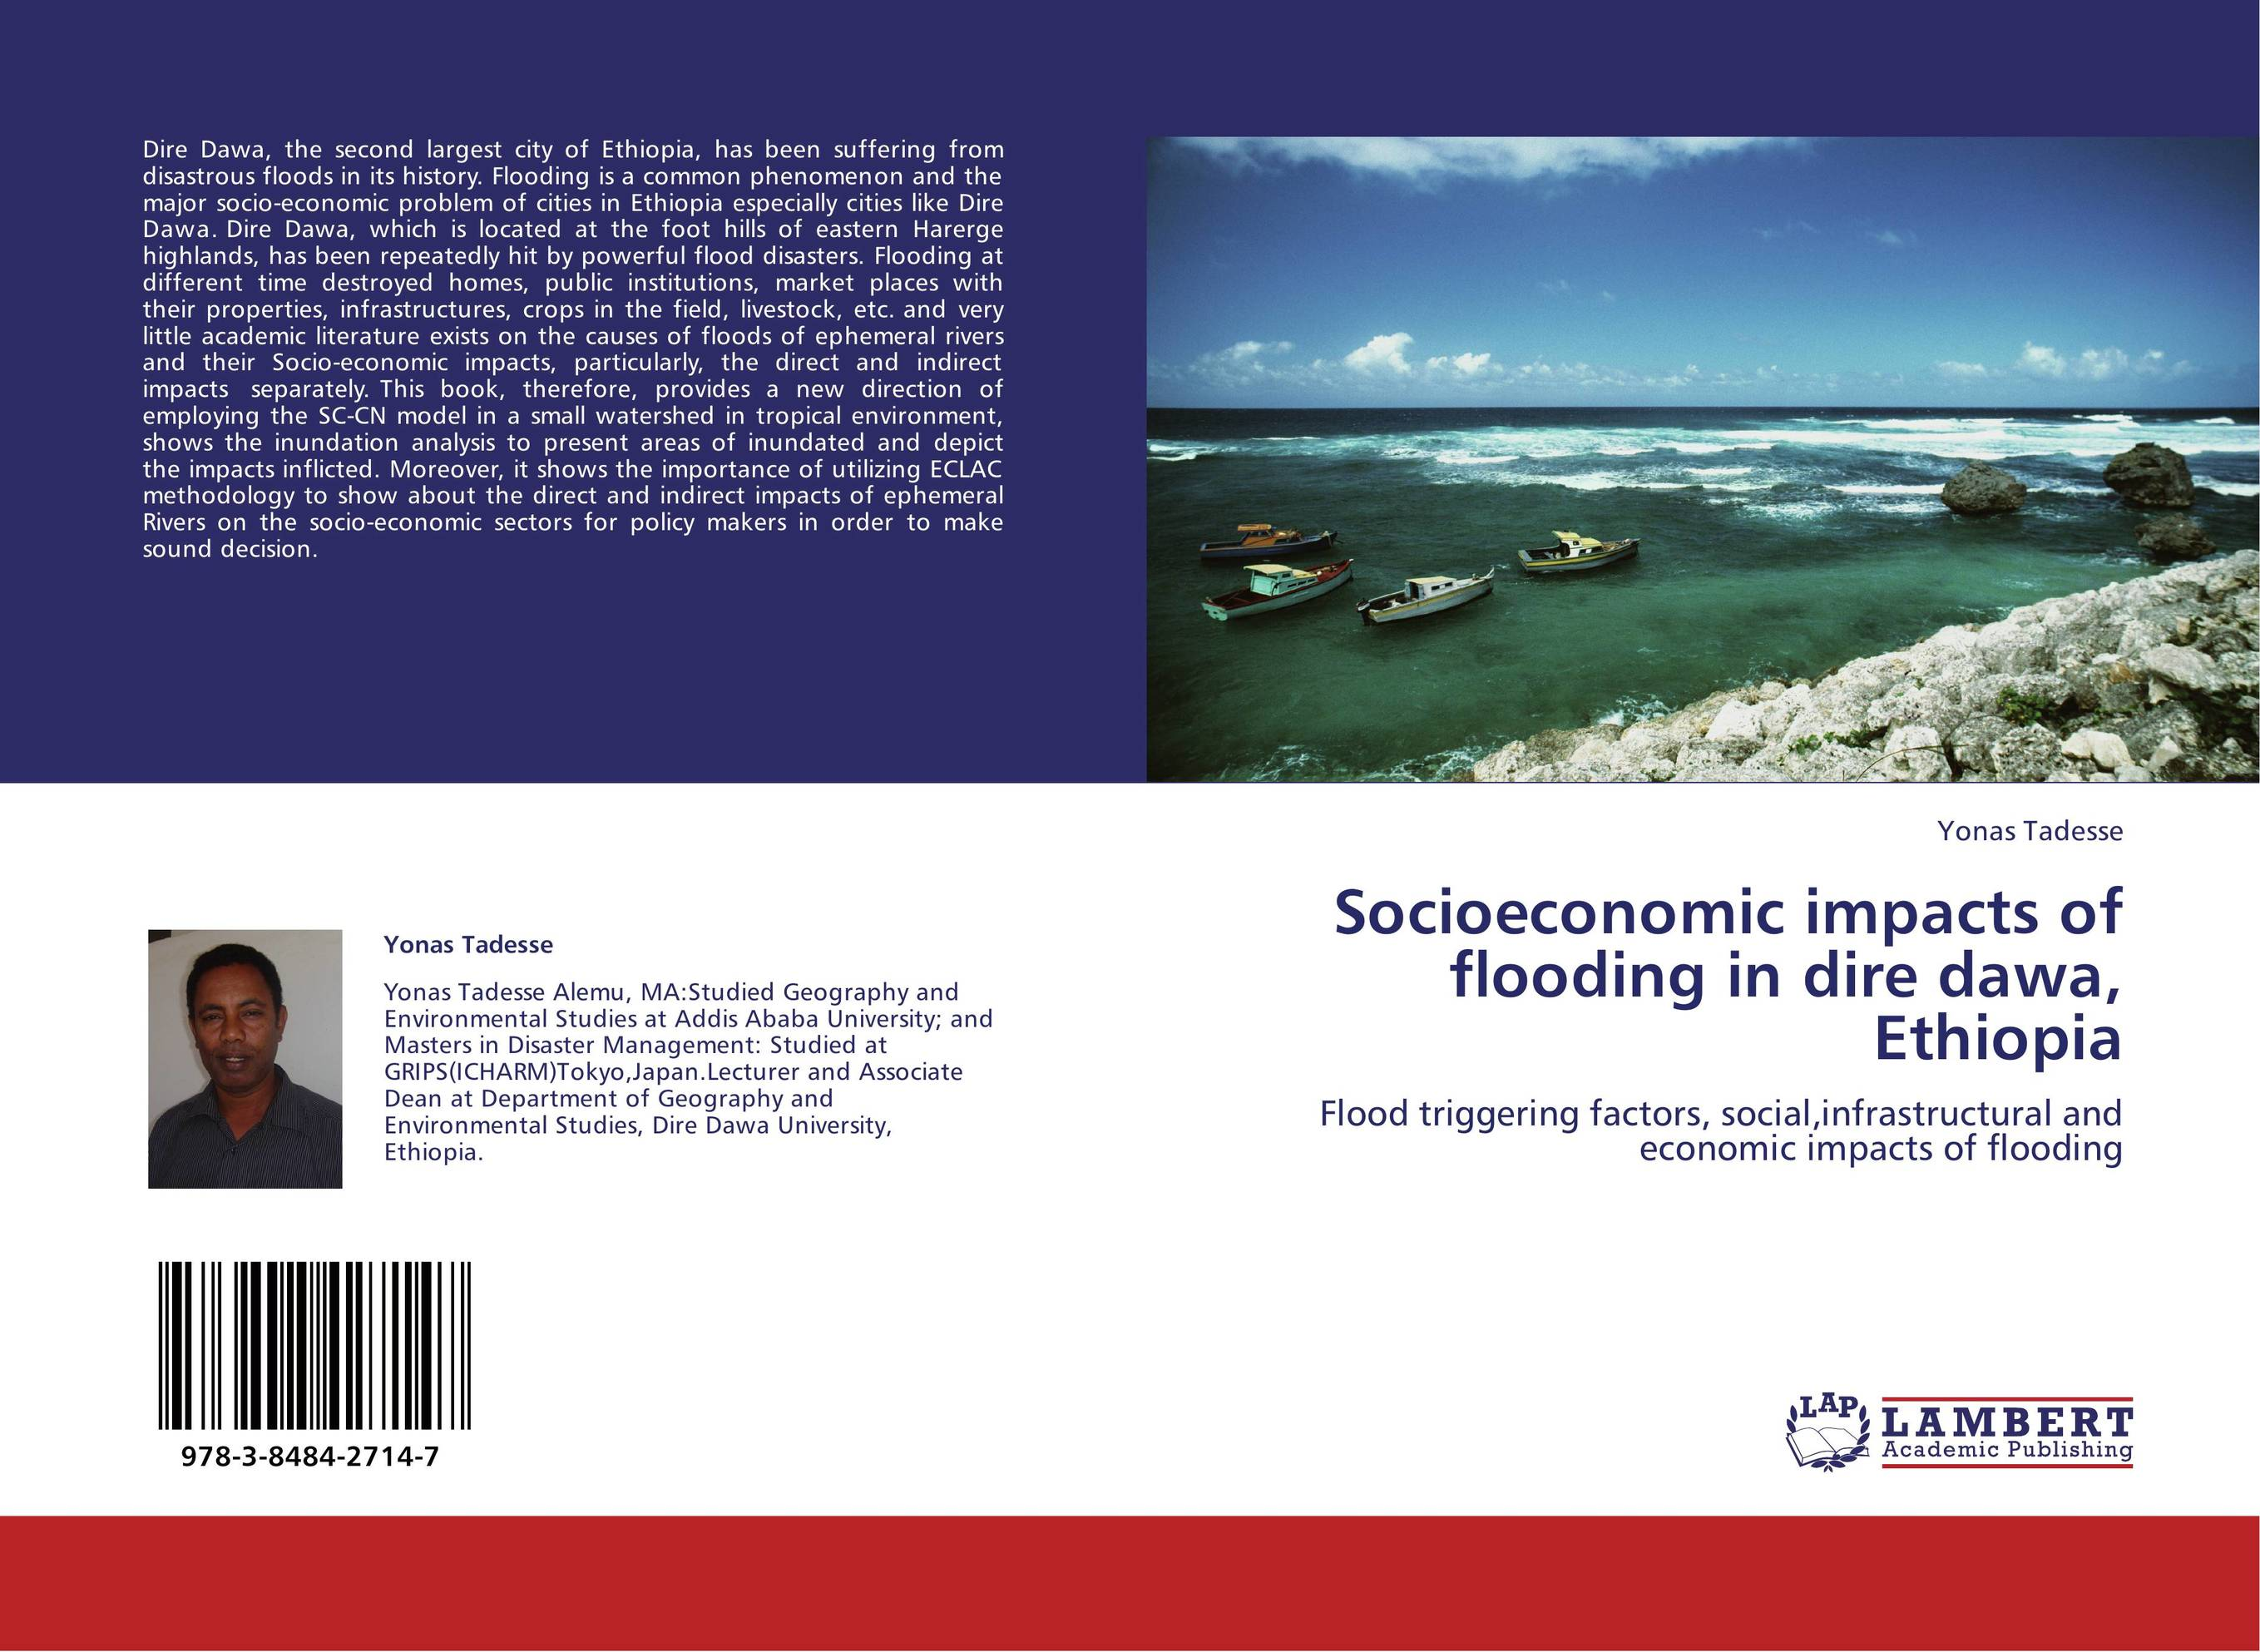 comparing impacts of flooding in ledcs Essays & papers the effects of flooding in ledc are significantly medcs usually have better flood protection and the effects are not that damaging comparing to ledcs.